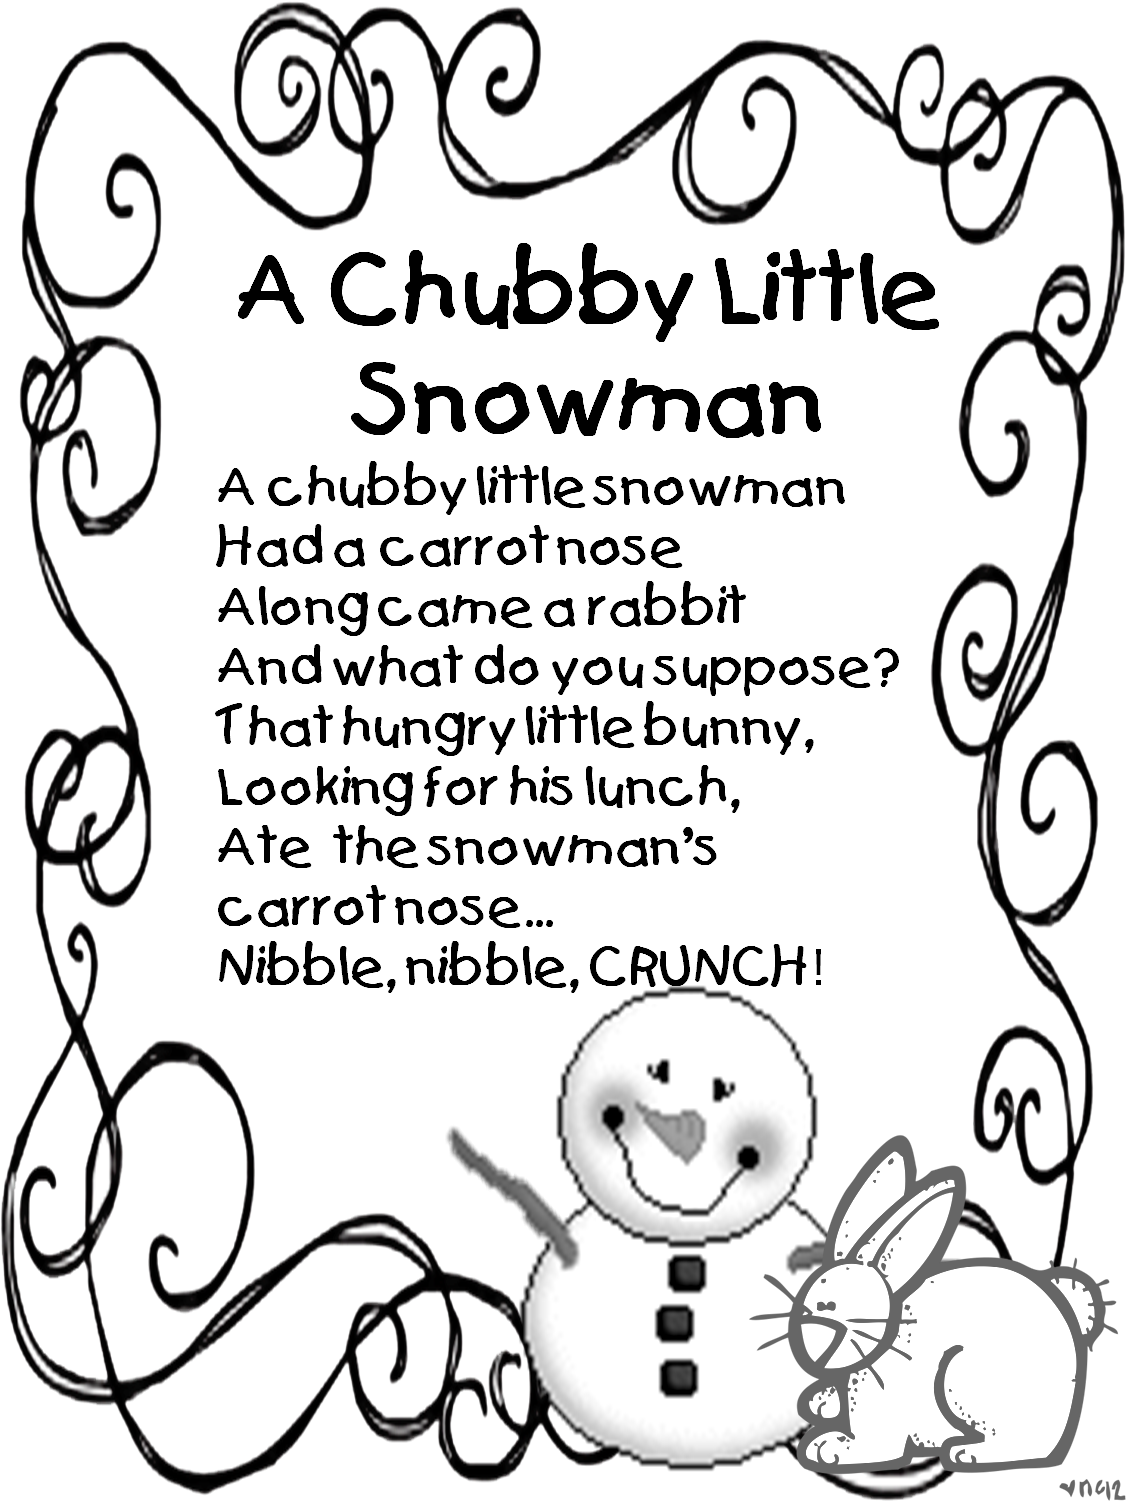 First Grade Wow: Search results for Marshmallow snowman | Winter ... png freeuse stock